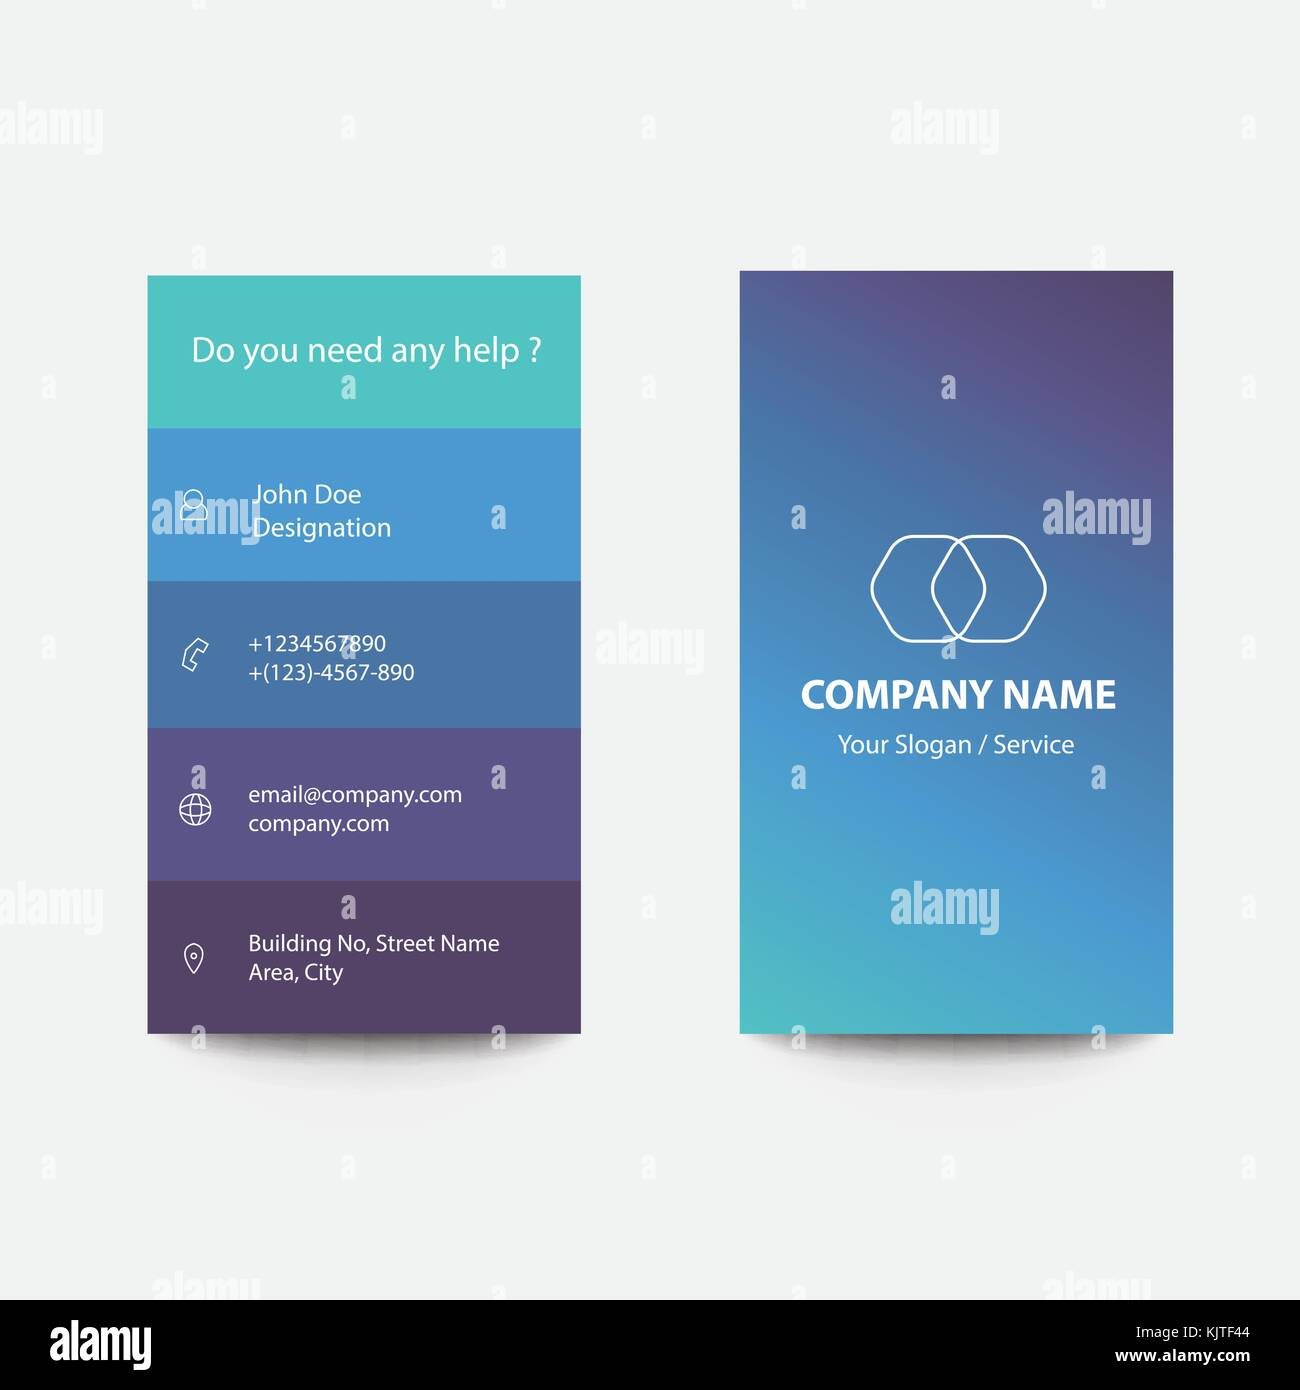 Clean Flat Design Business Card with Creative Concepts and Modern ...